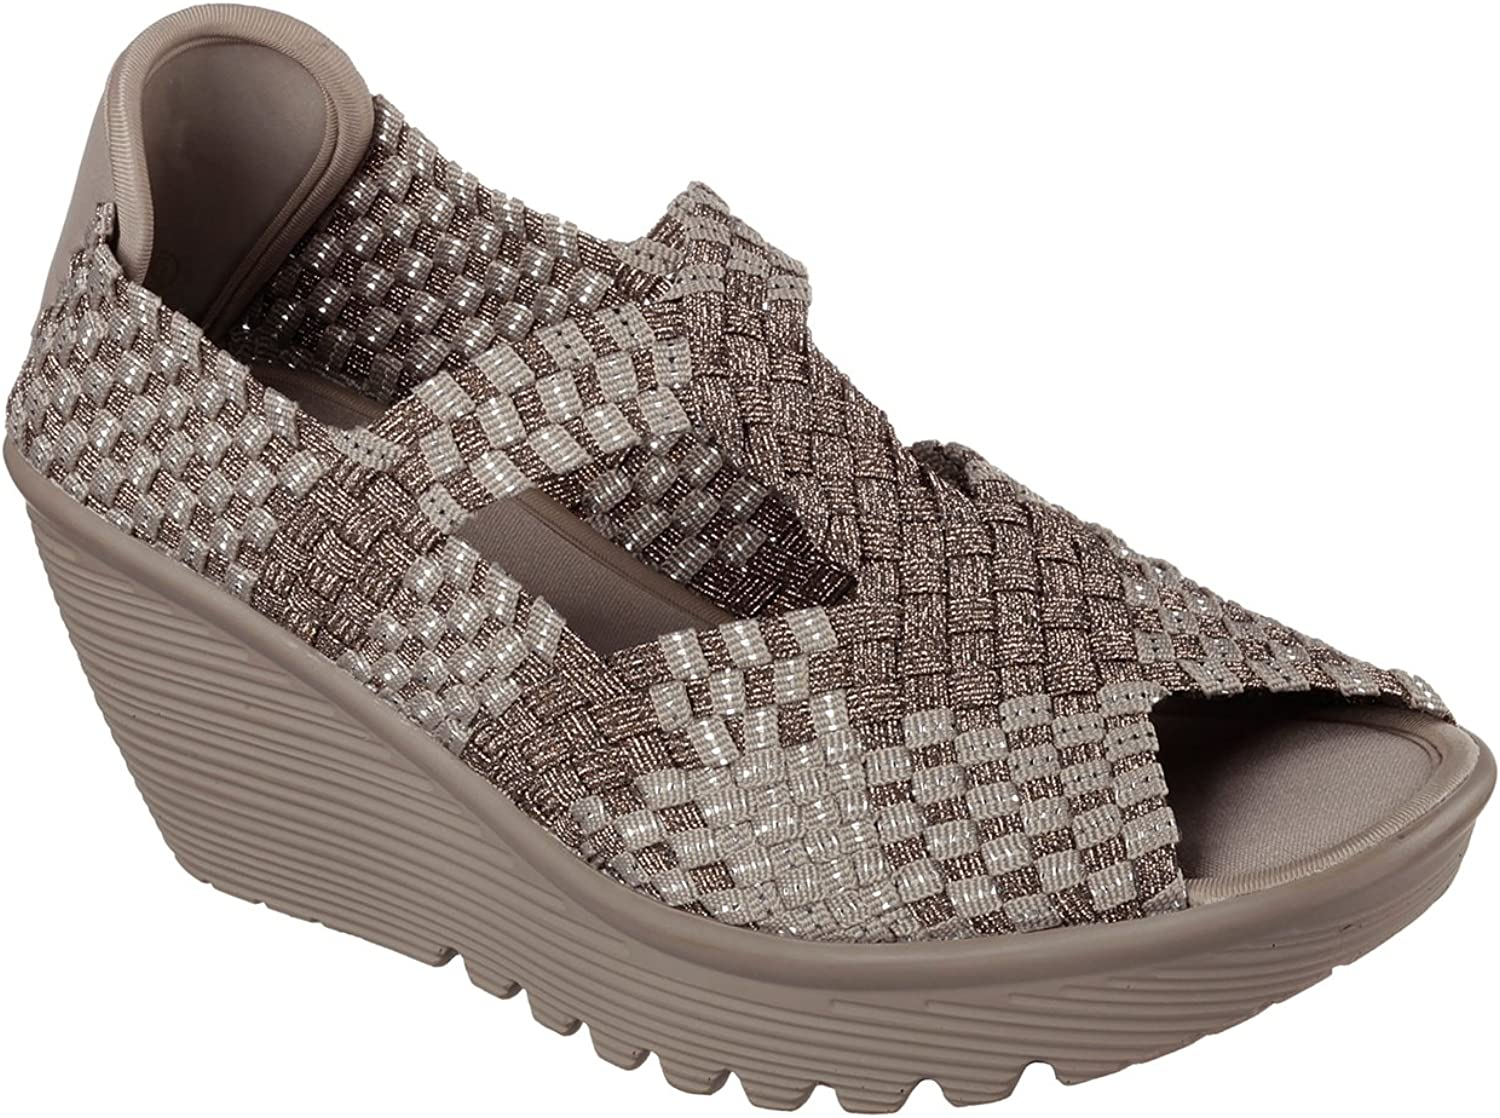 Skechers Women's Parallel Disbeweave Open Toe Wedge